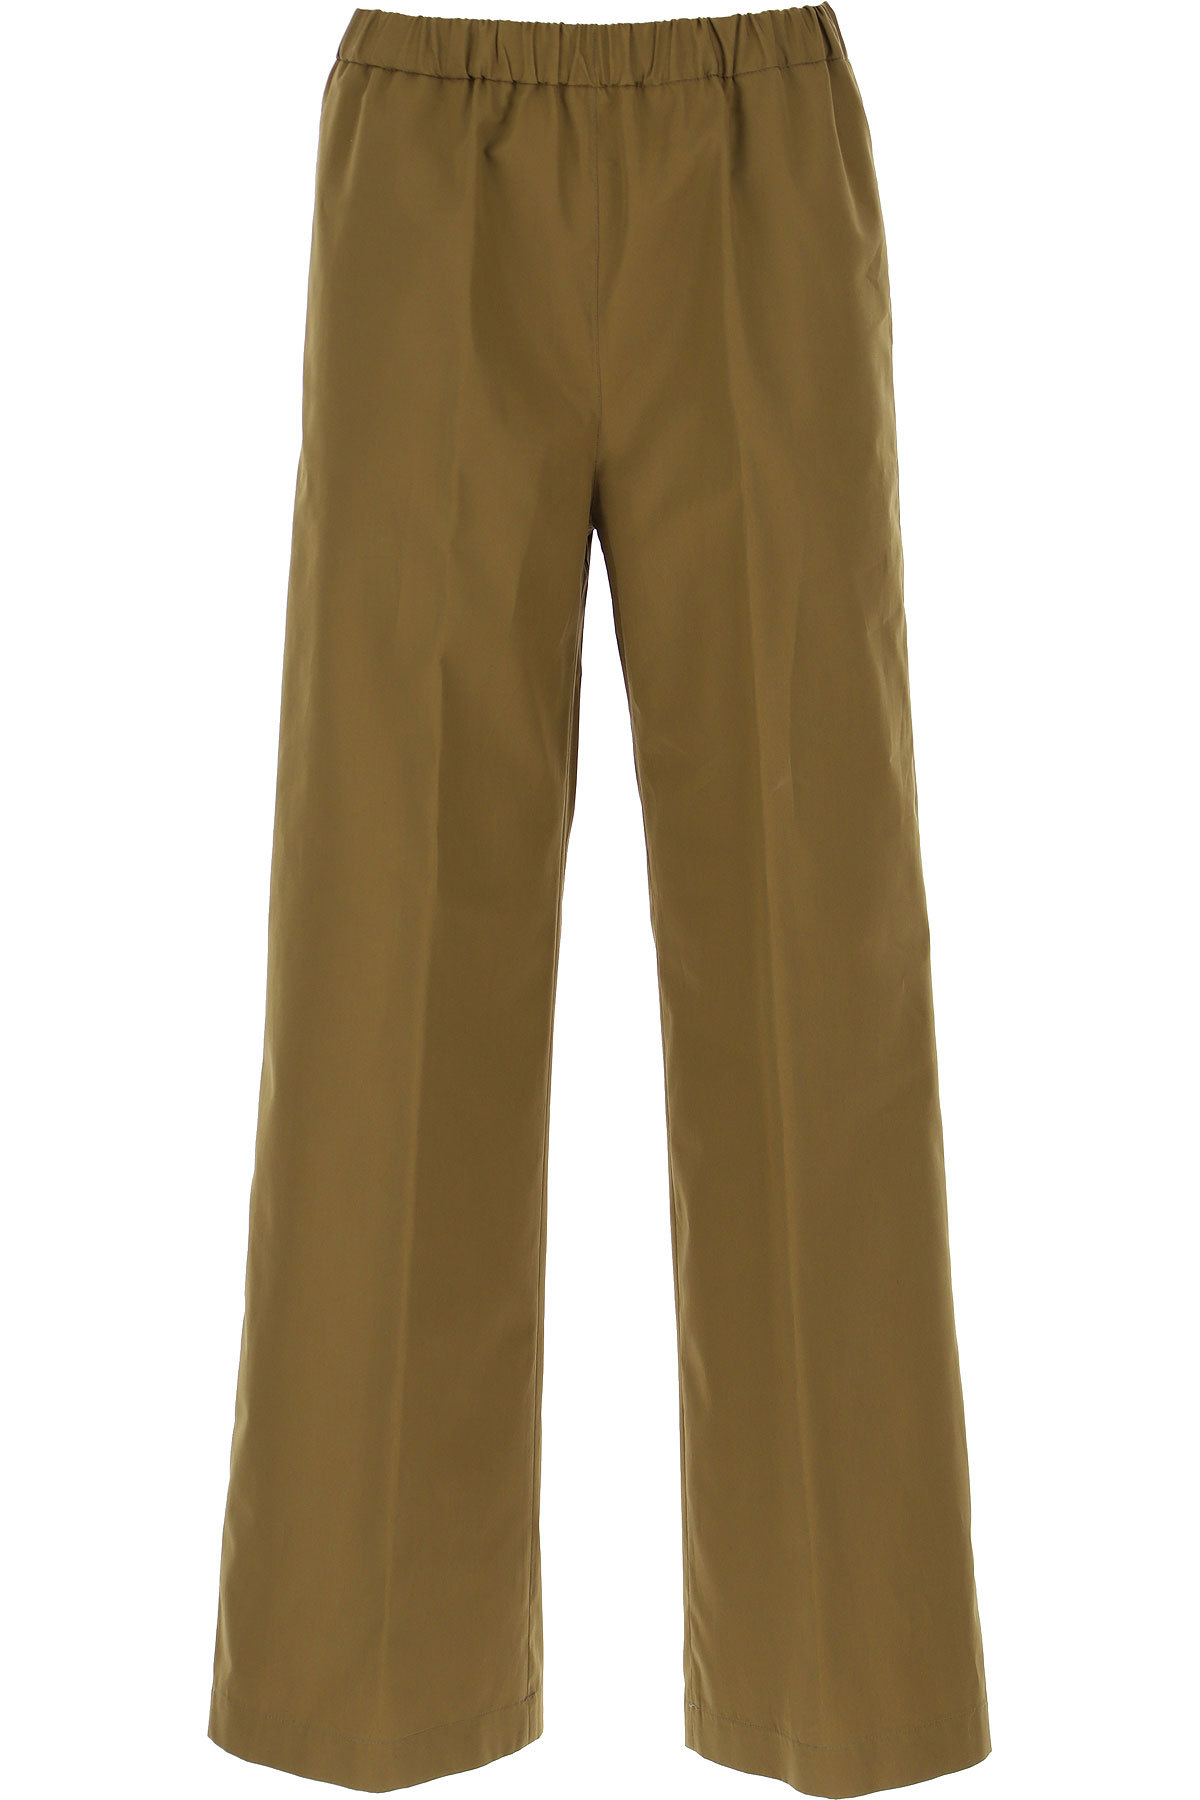 Aspesi Pants for Women On Sale, Olive Green, Cotton, 2019, 26 28 30